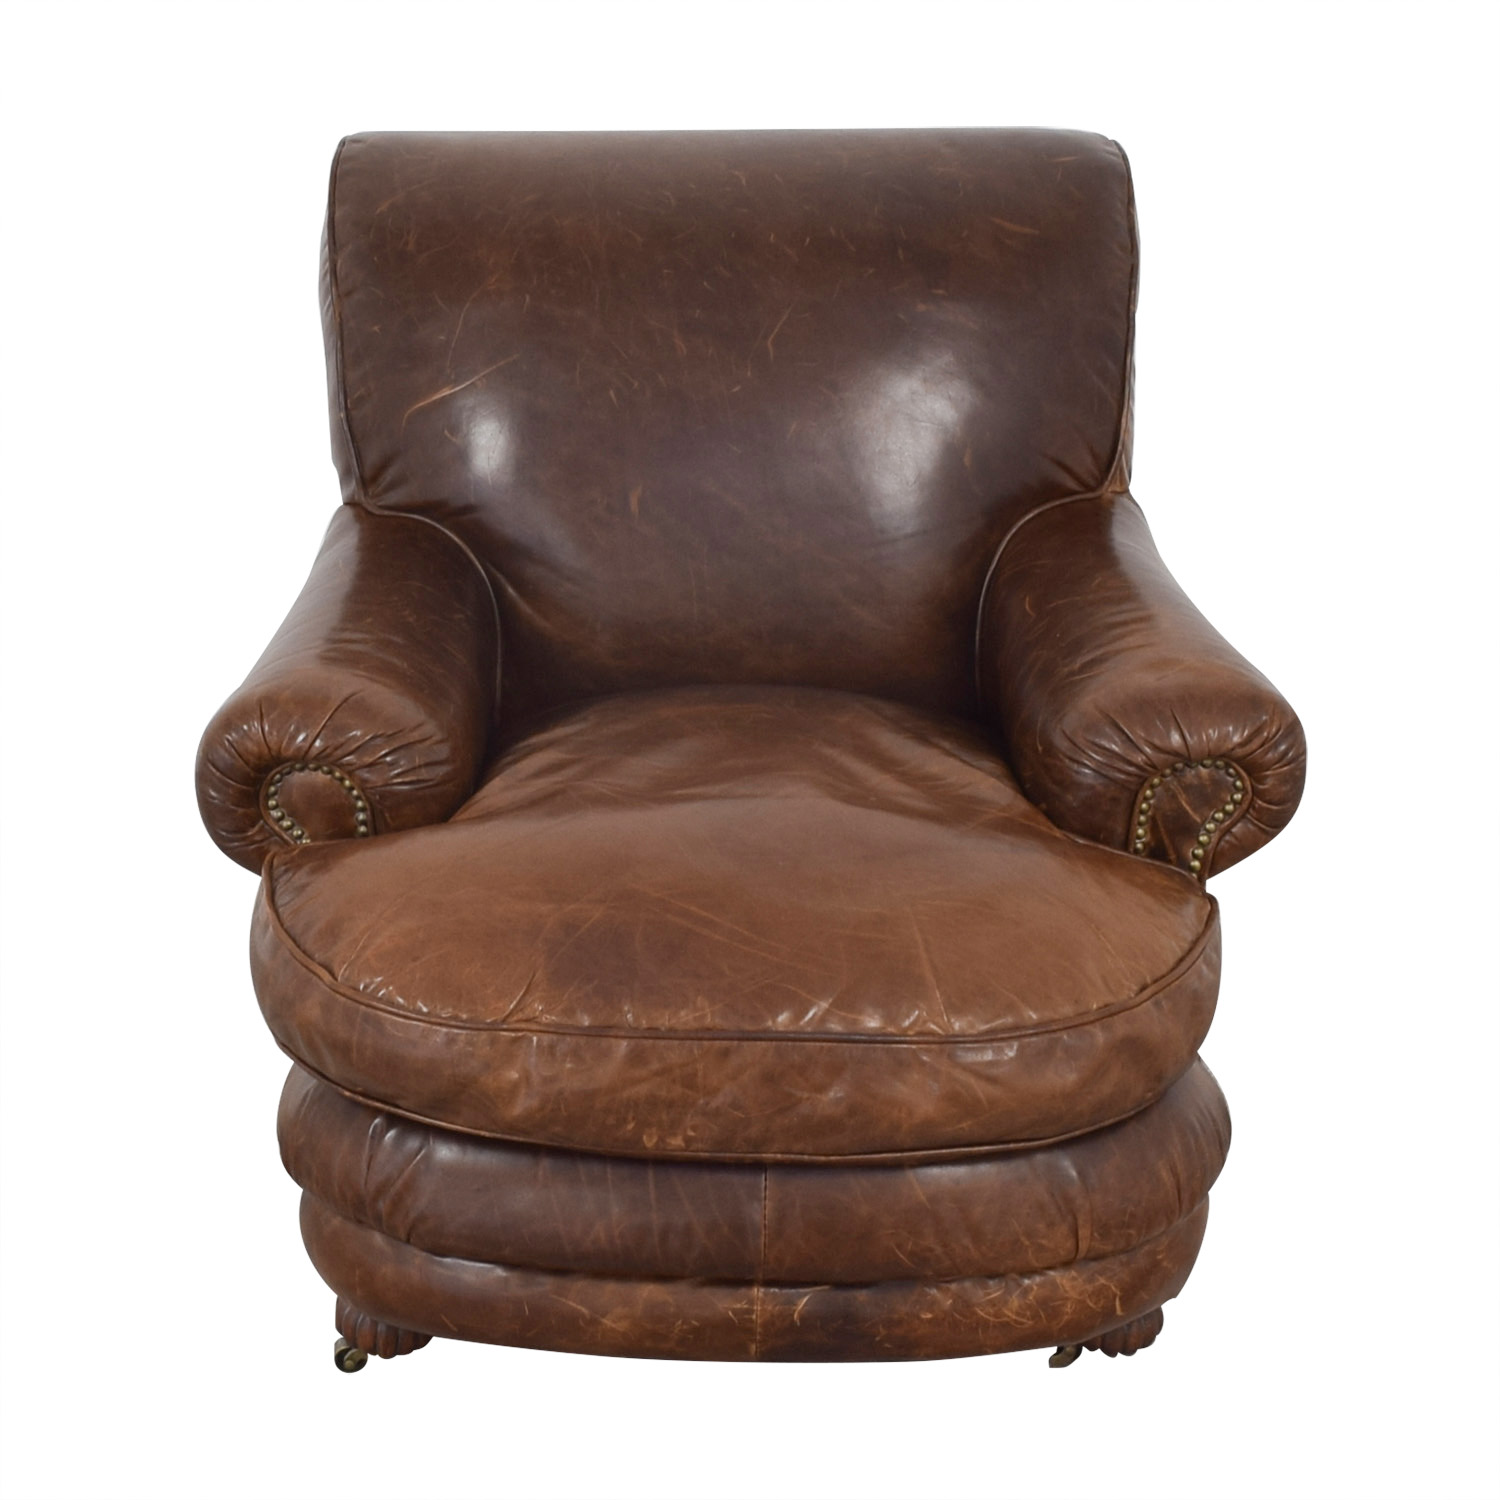 Restoration Hardware Restoration Hardware Library Chair used